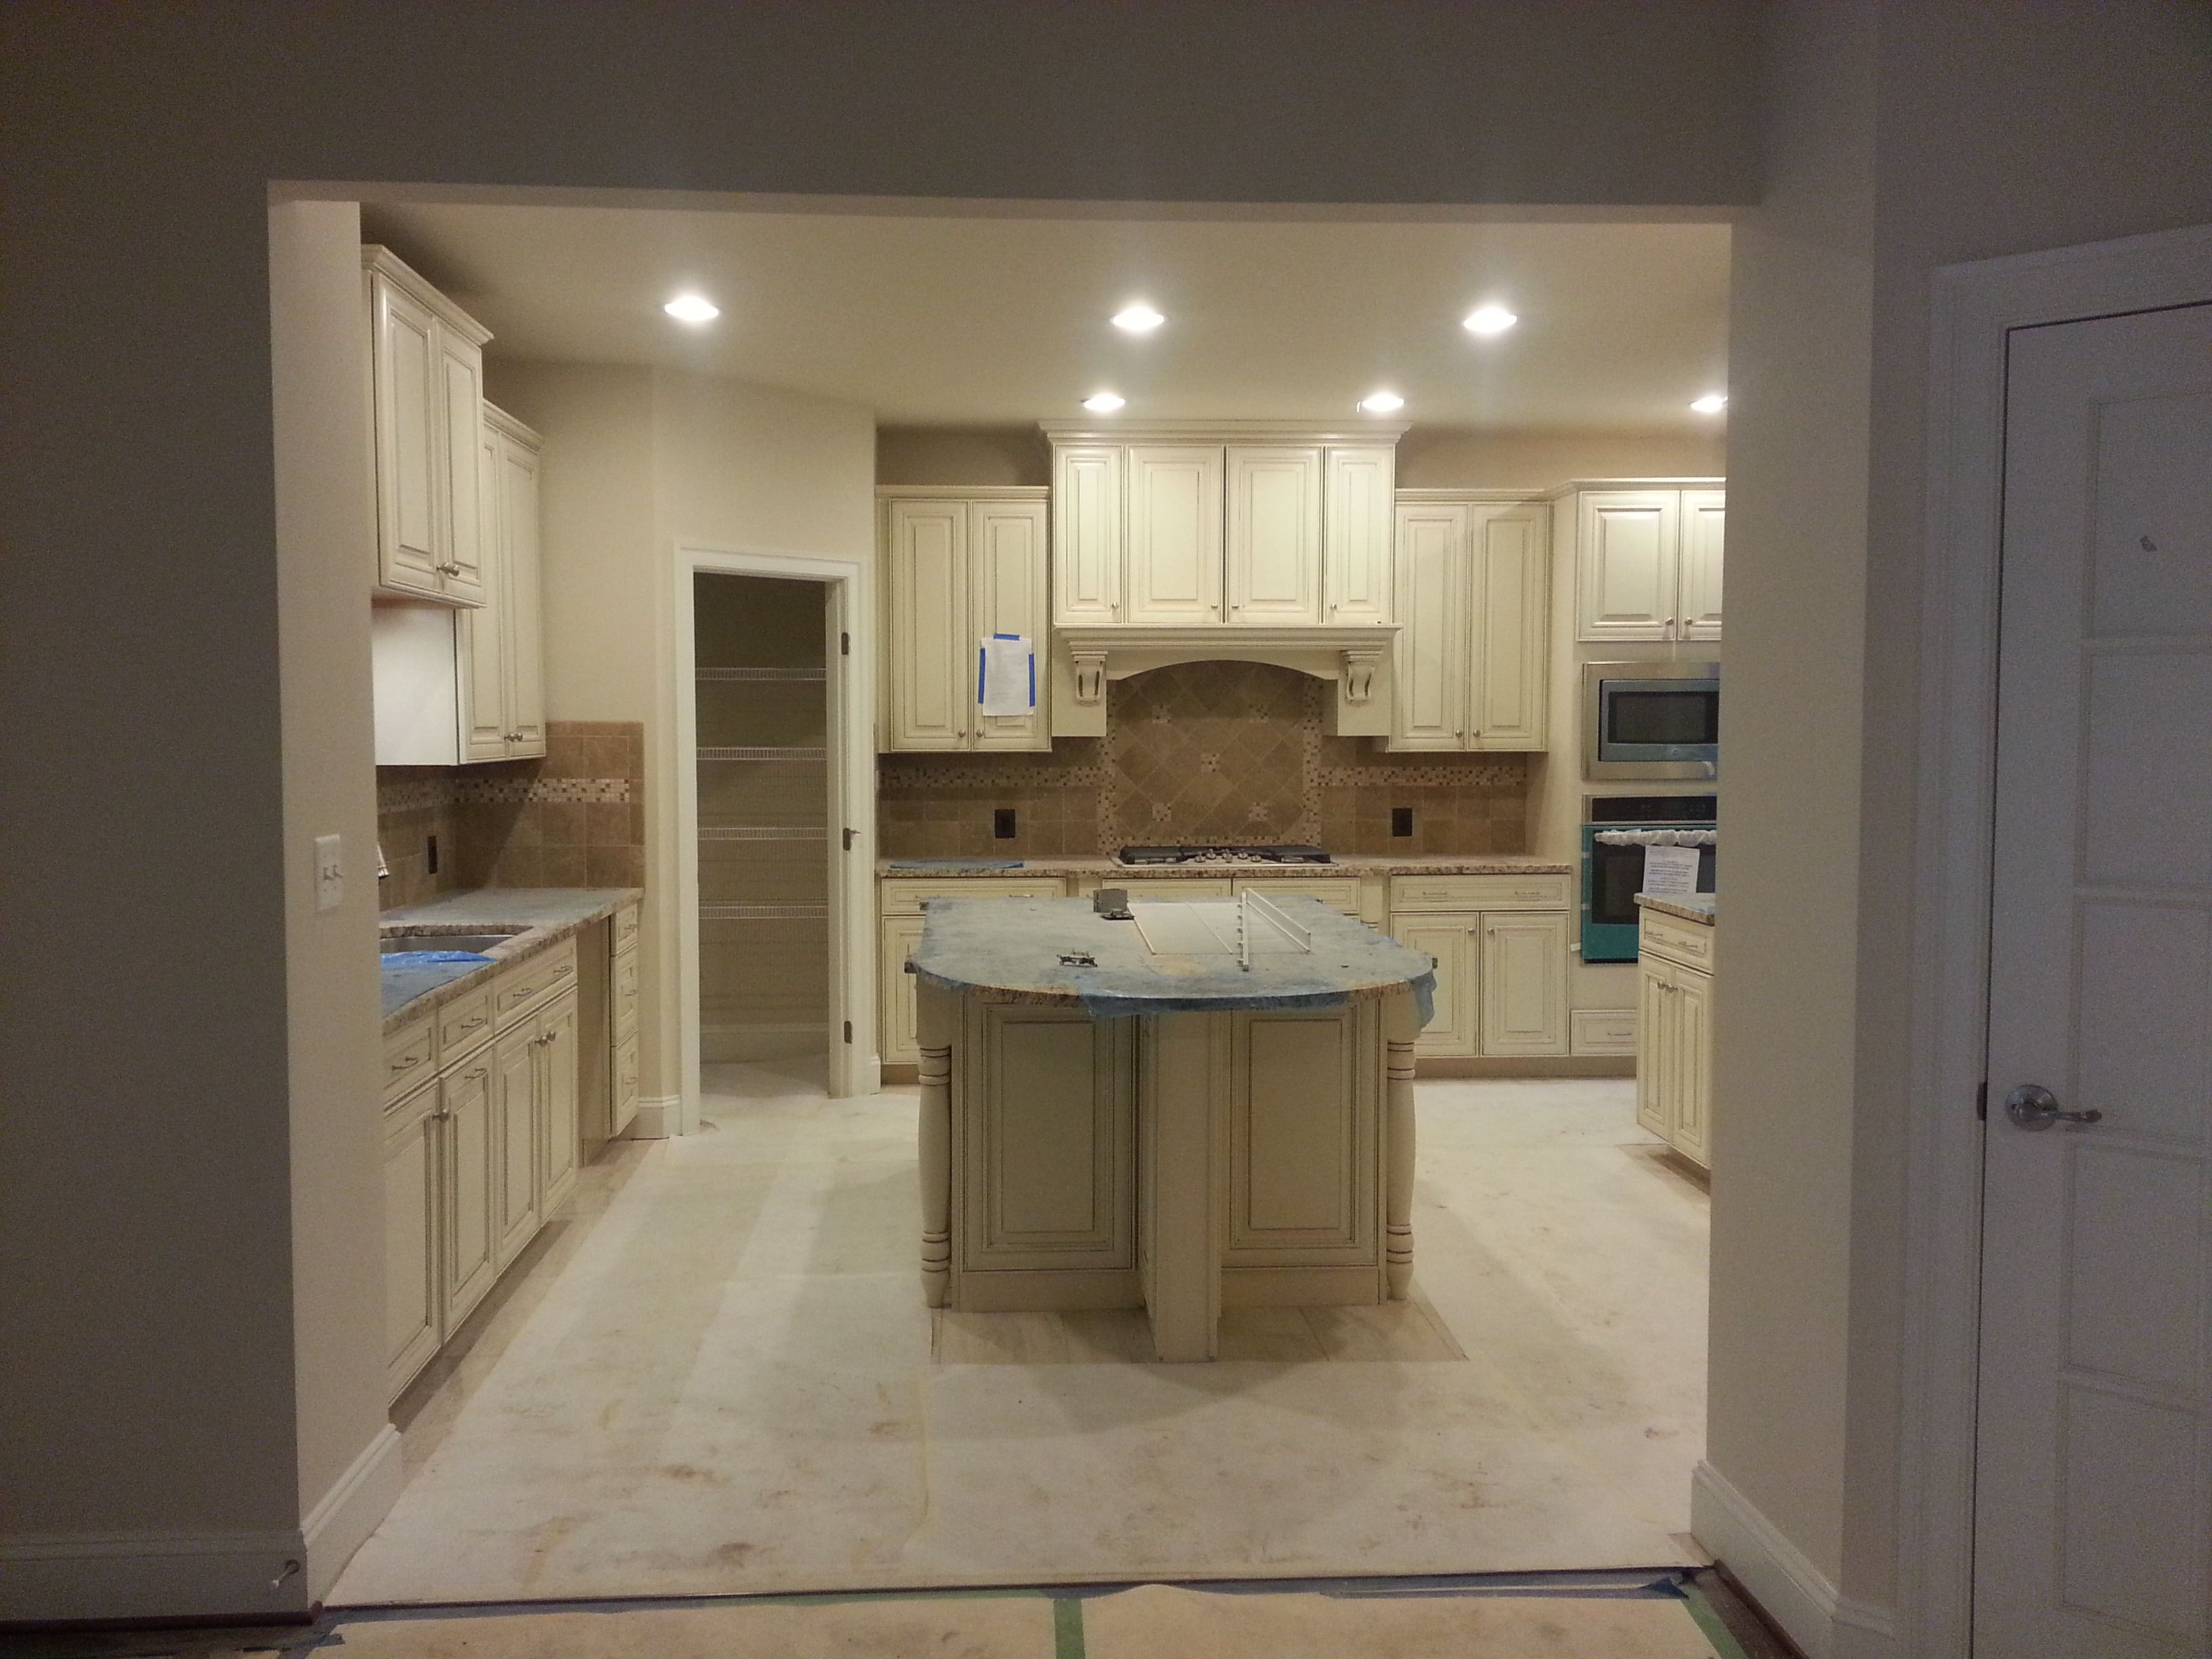 Attractive Here Is Our Kitchen During The Construction Of Our Home. Cabinets Are  Timberlake Sierra Vista